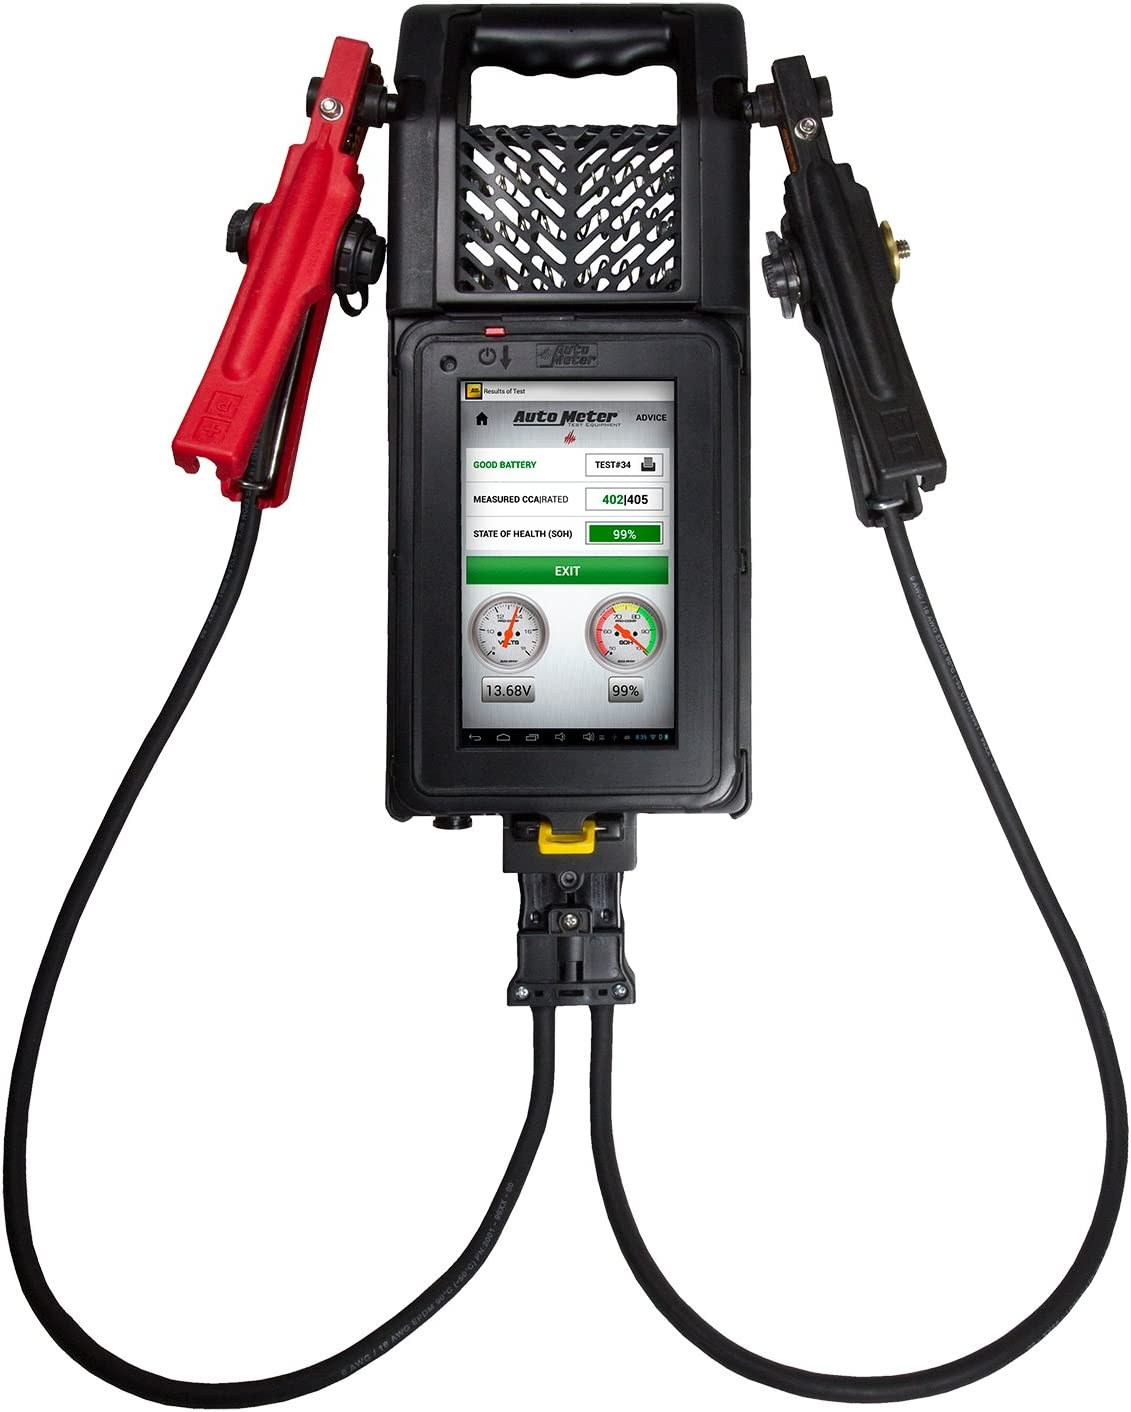 AutoMeter BCT-460 Wireless Battery and System Tester Hd Truck Tablet-Based